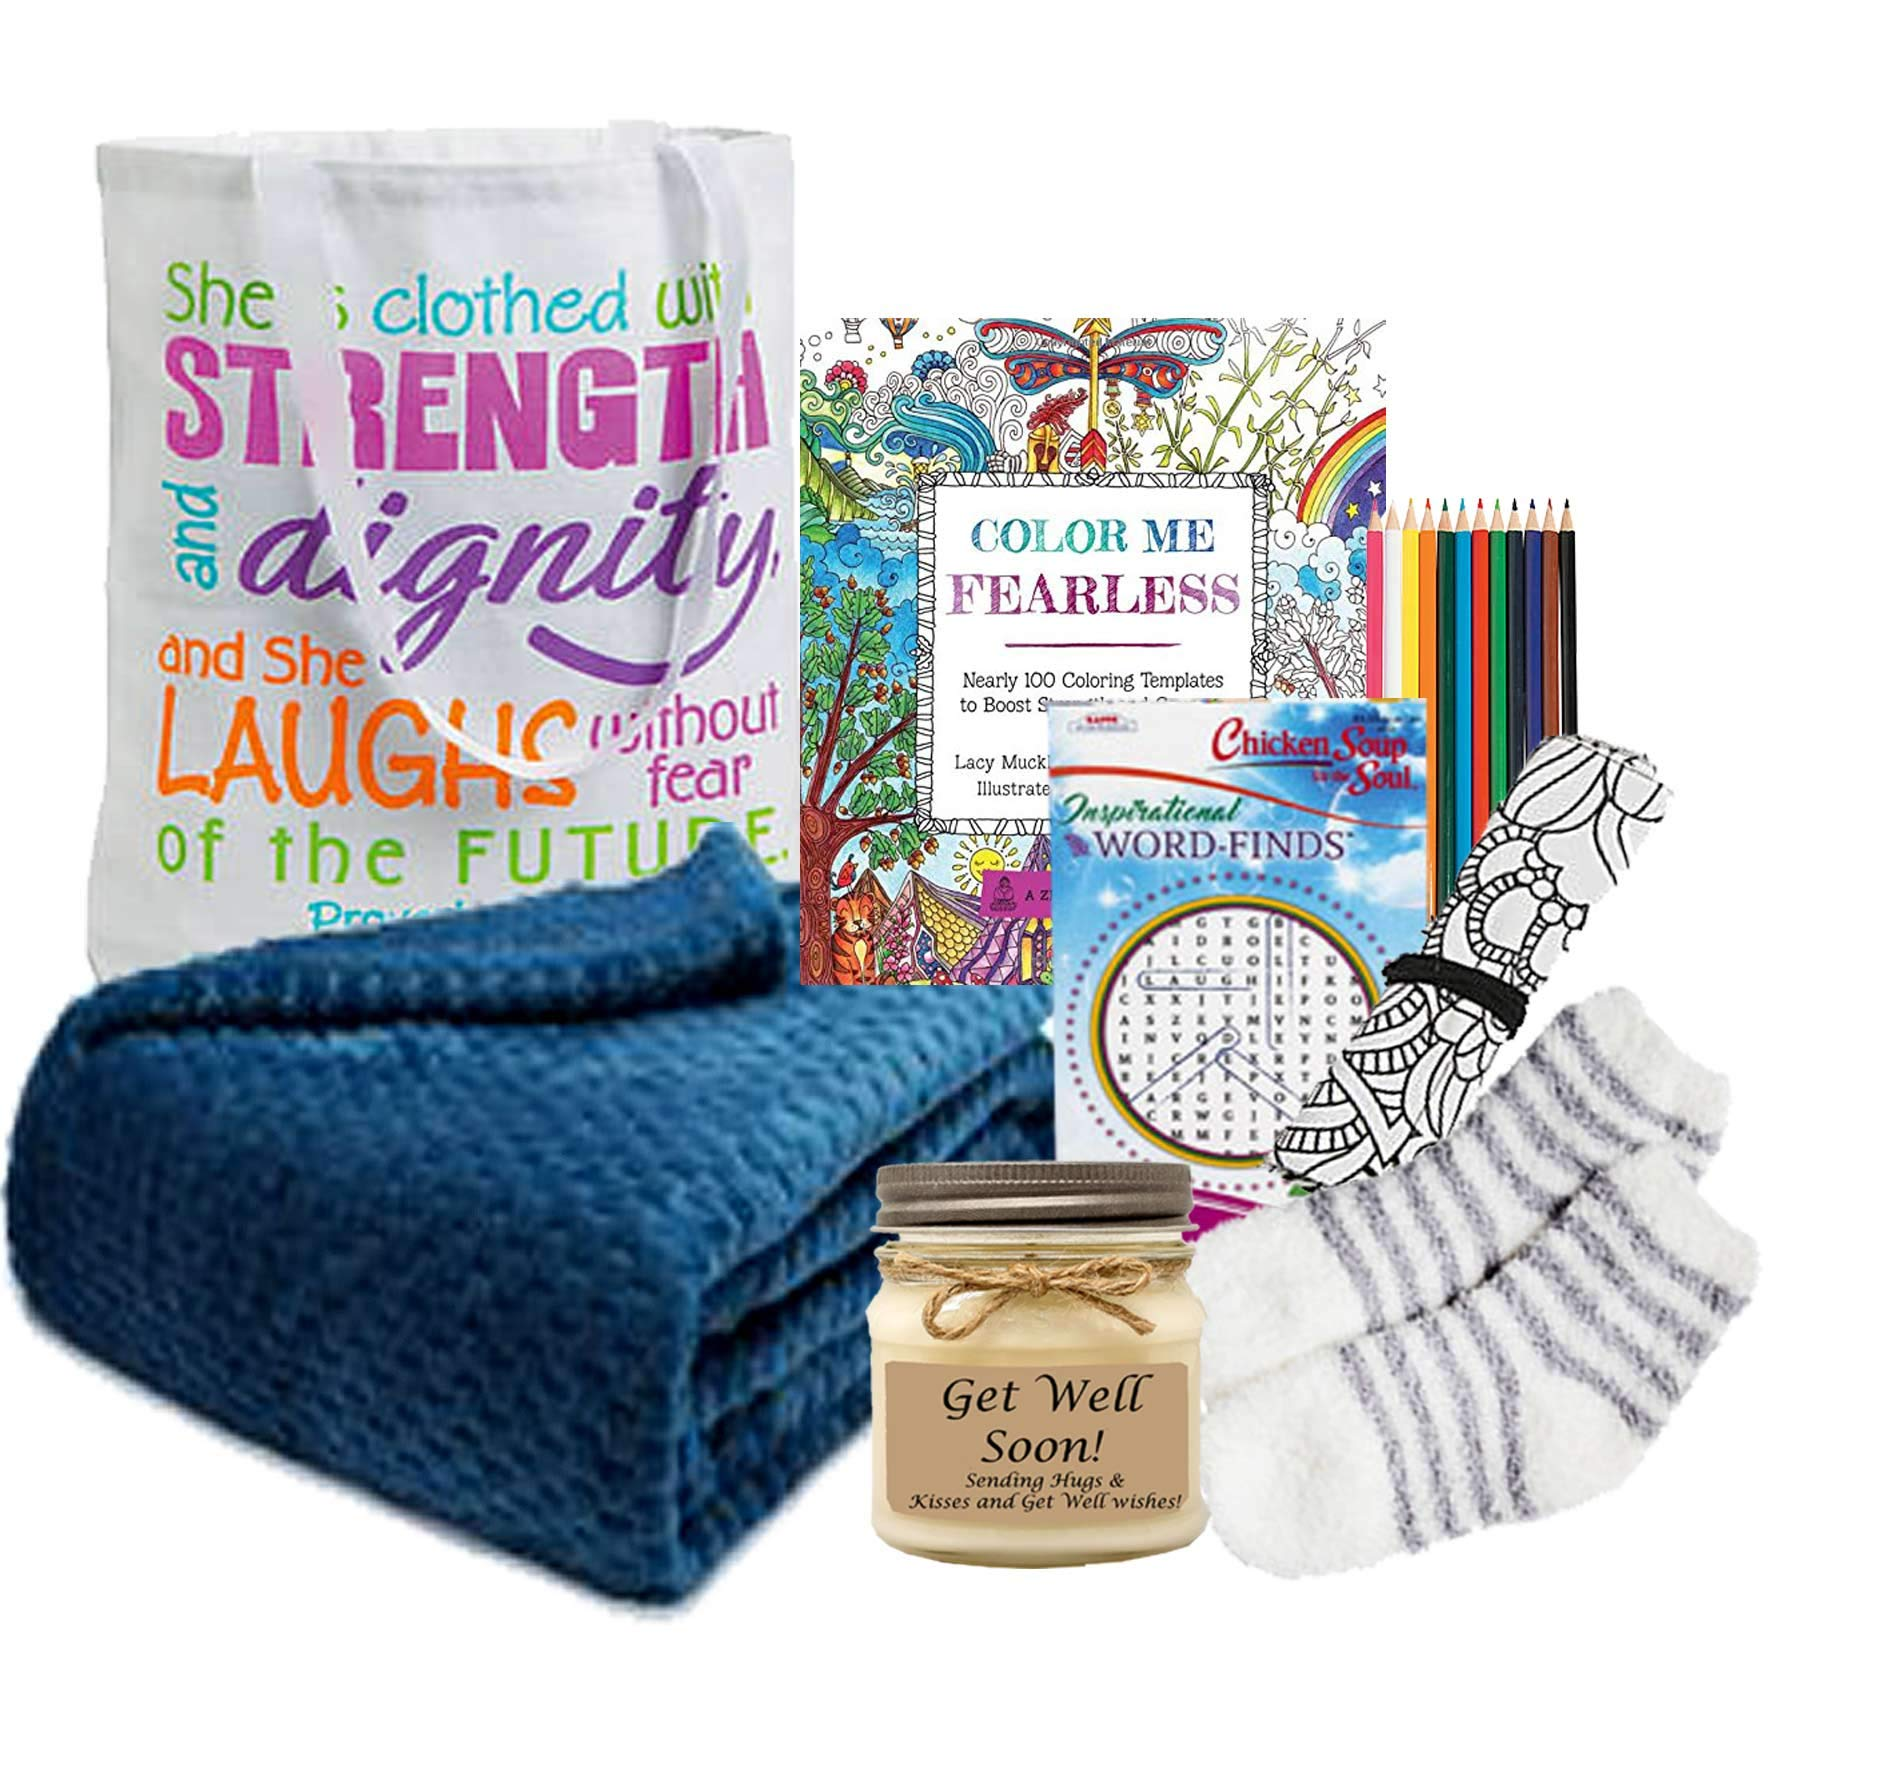 Get Well Gift for Women - Get Well Soon Basket with an Ultra Plush Blanket, Tea, Get Well Candle and More